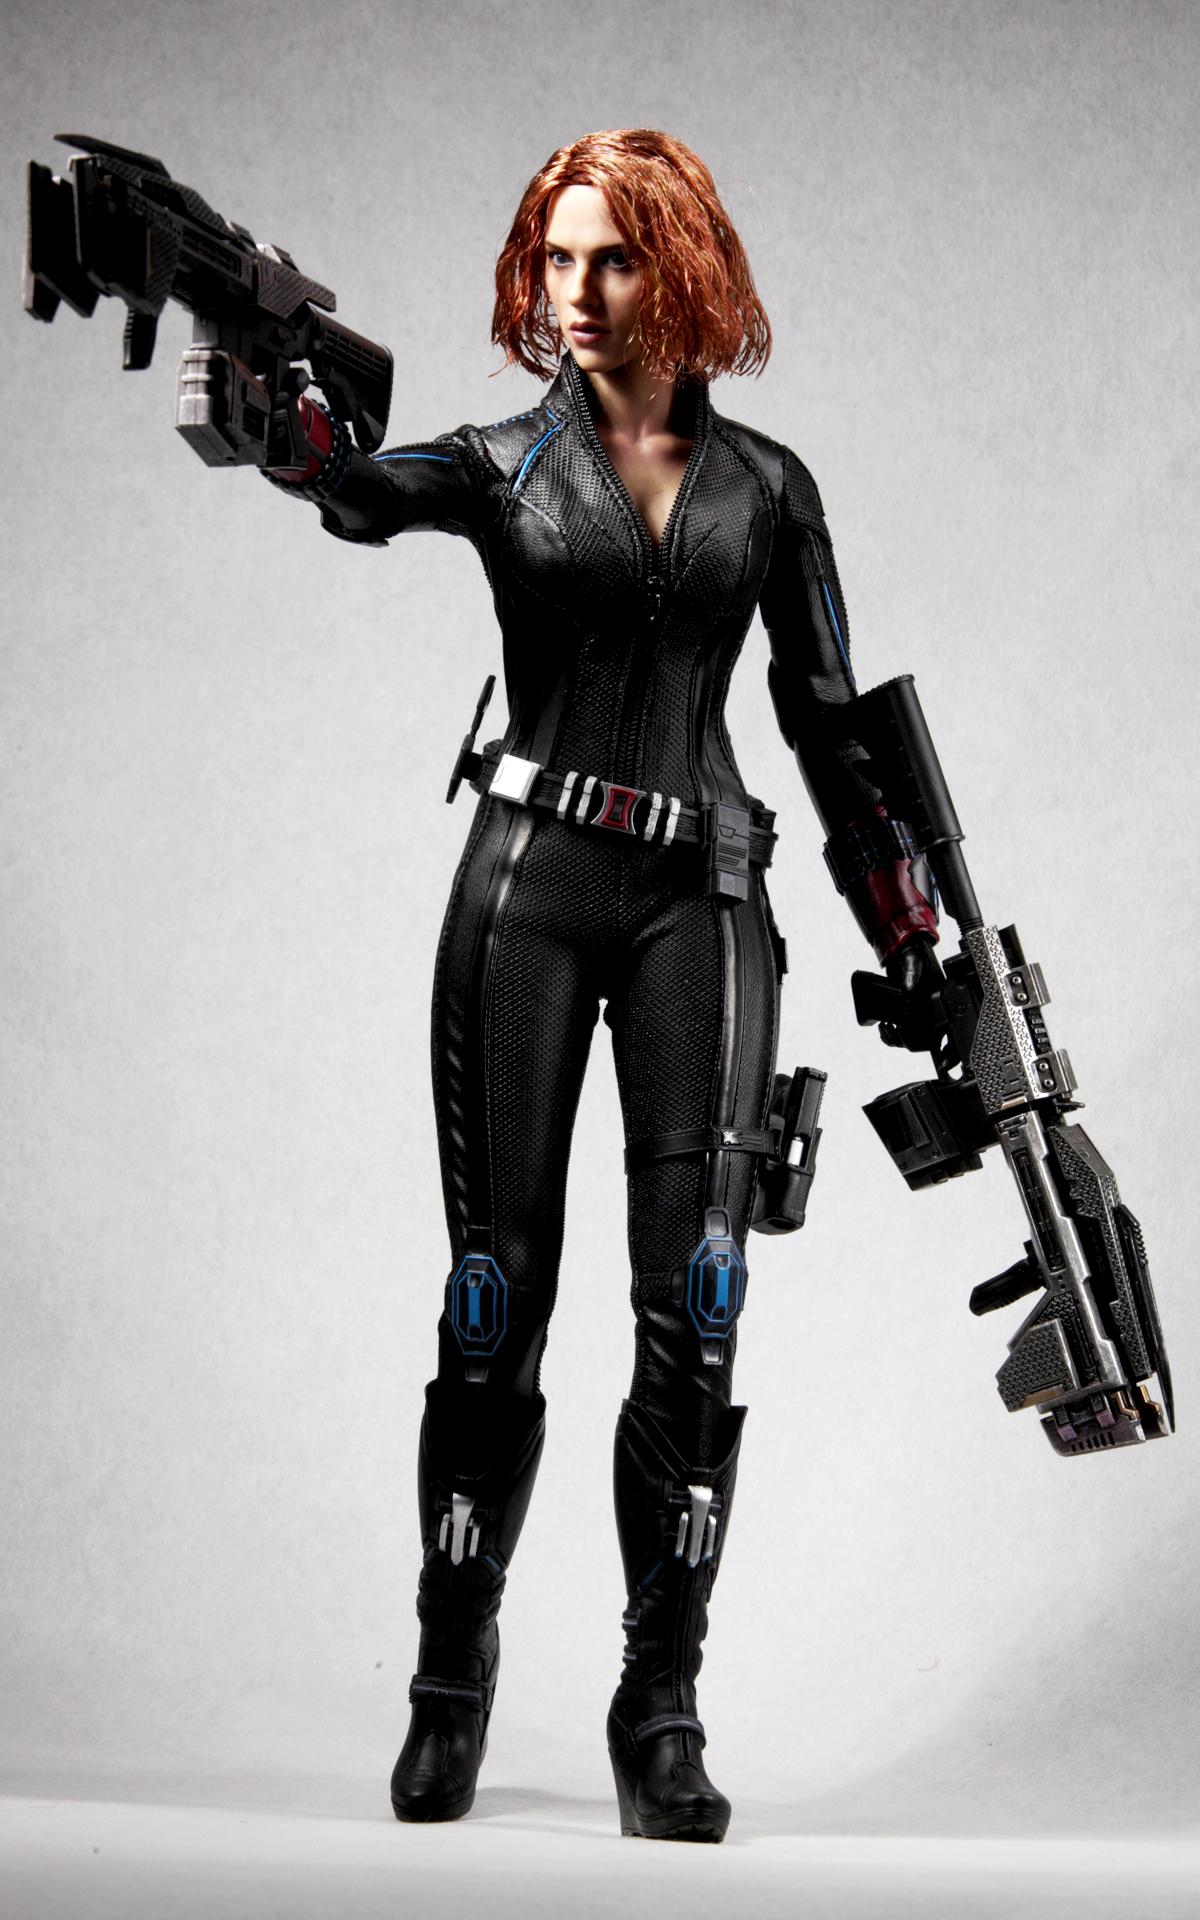 hottoys-avengers-age-of-ultron-black-widow-picture03